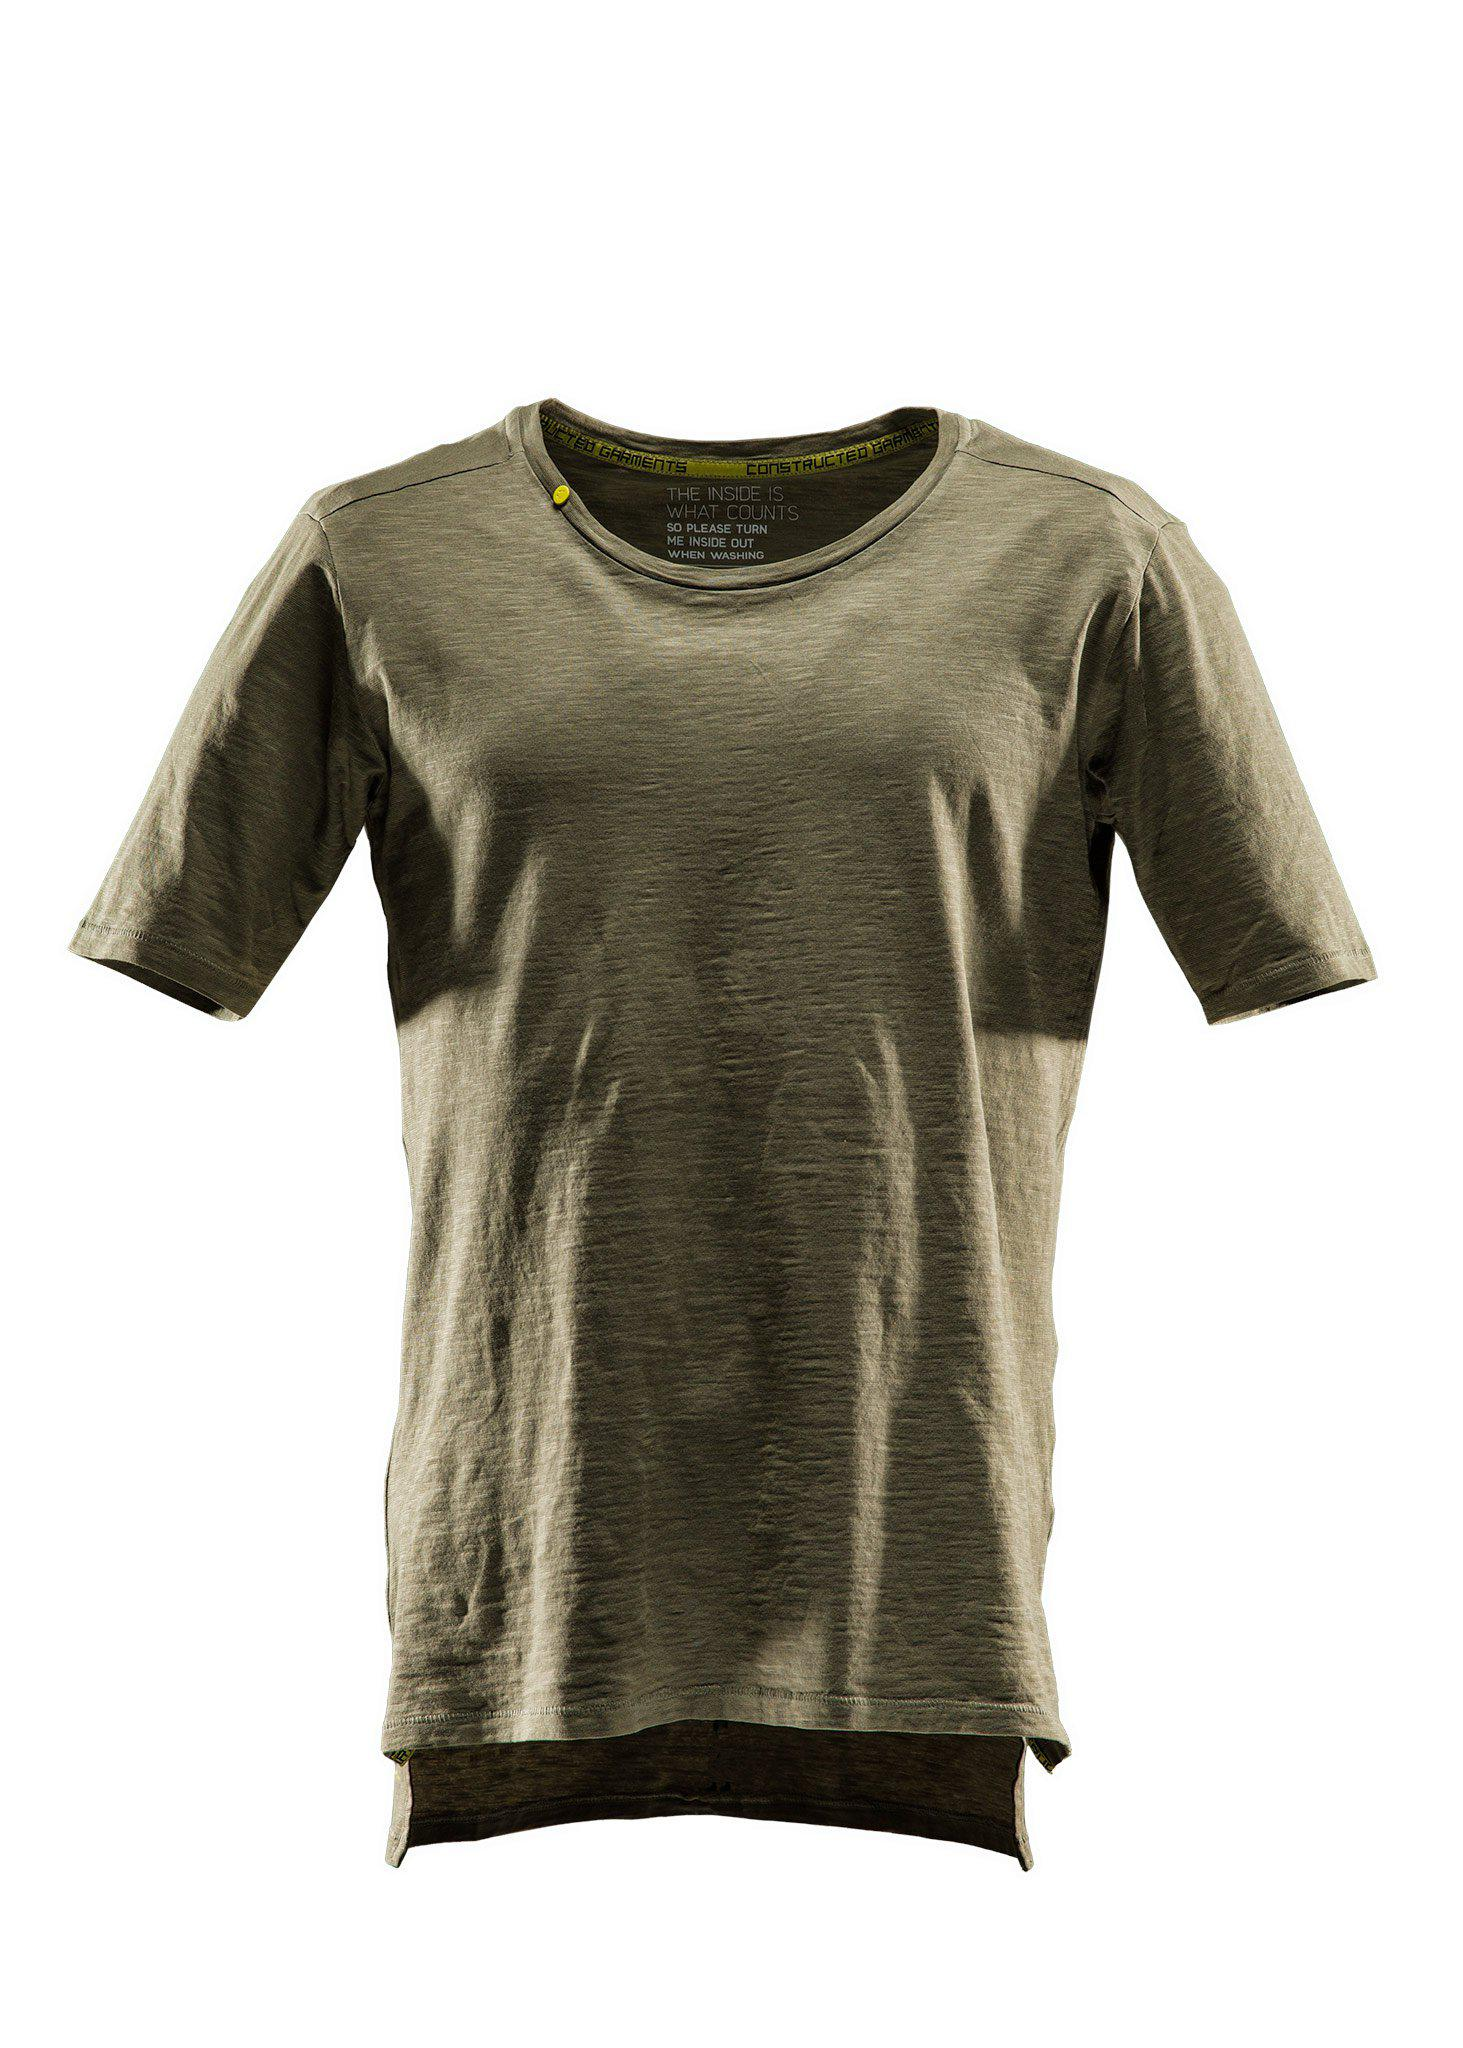 Comfort tee SS, T-shirt short sleeve, Burnt olive green, M